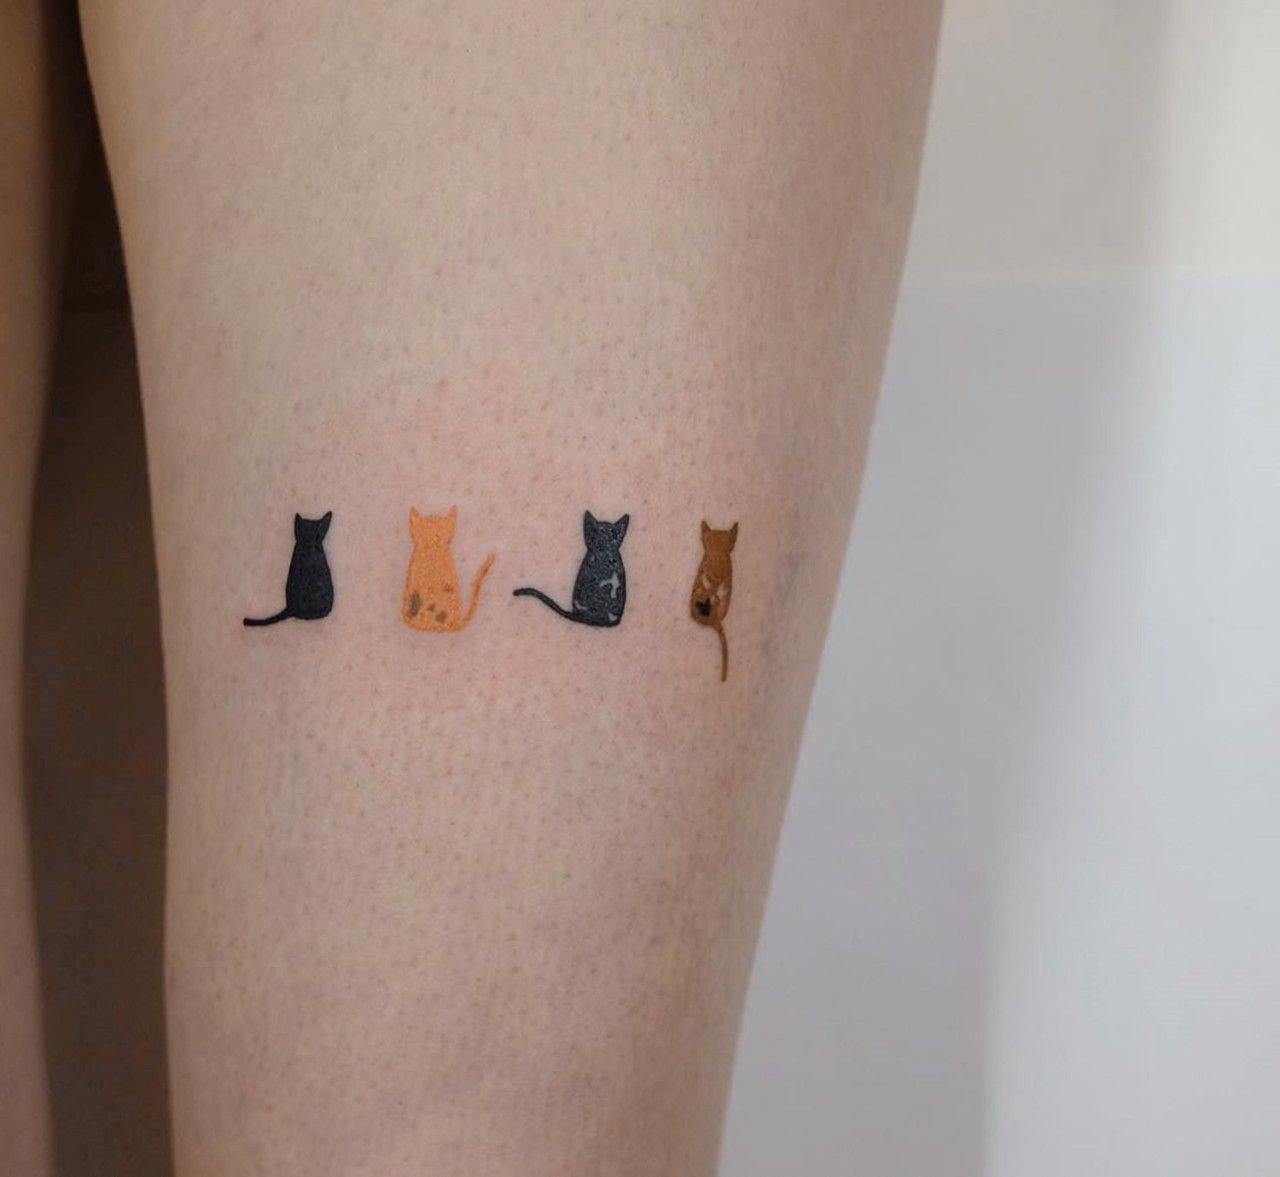 Cattattoos Tattoos Minimalist Prettytattoos Cute Cat Tattoo